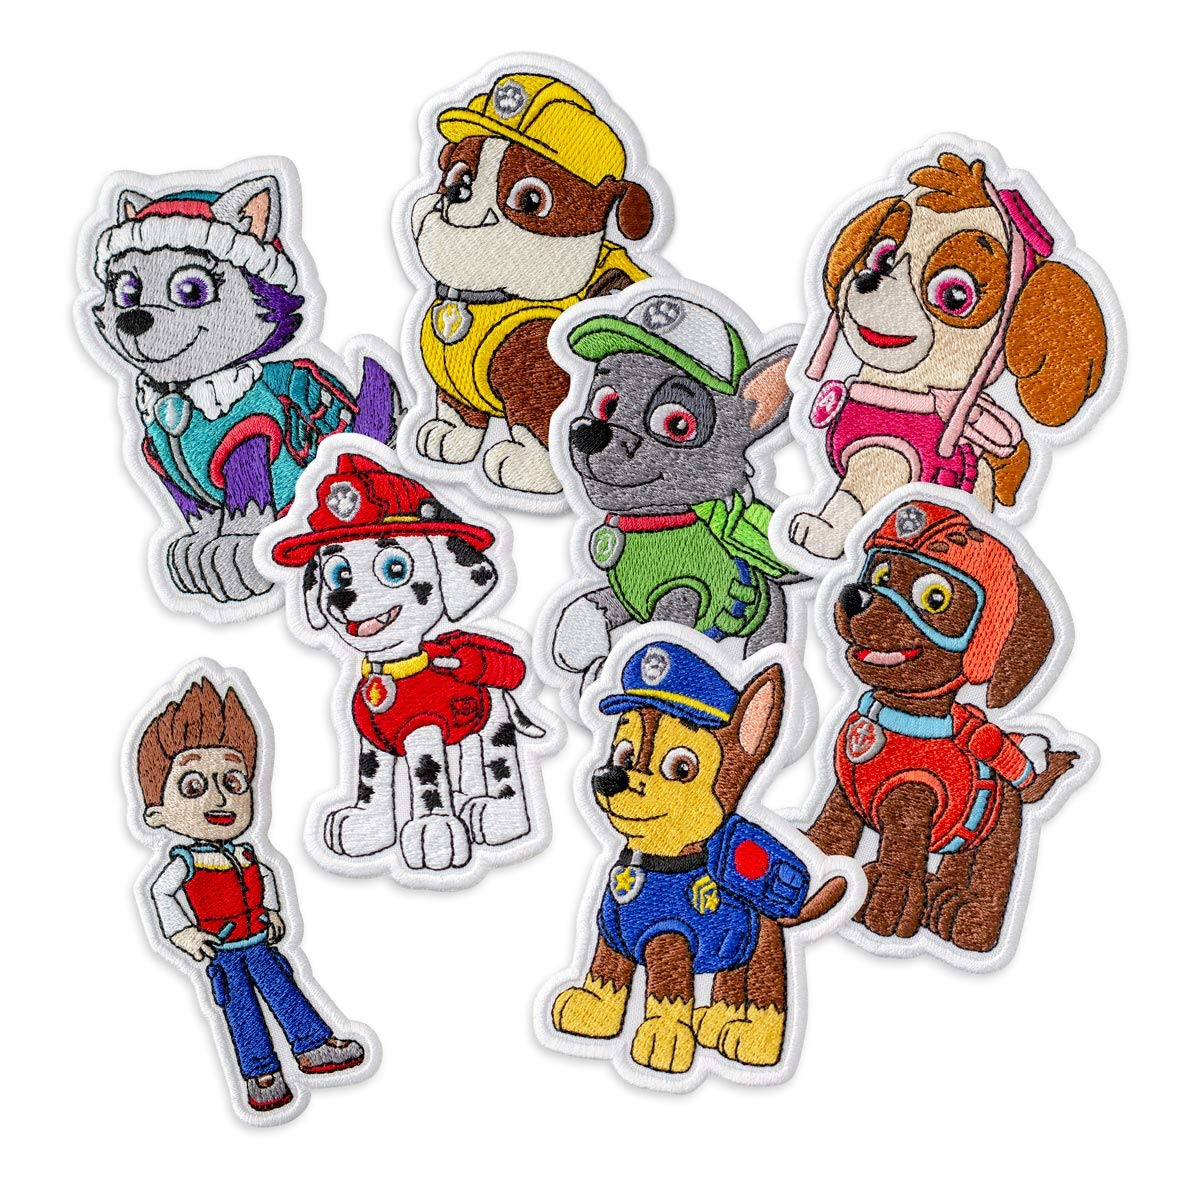 PAW Patrol Collection Set (Ryder, Chase, Everest, Marshall, Rocky, Rubble, Skye, Zuma) Embroidered Patches Iron On by Embrosoft